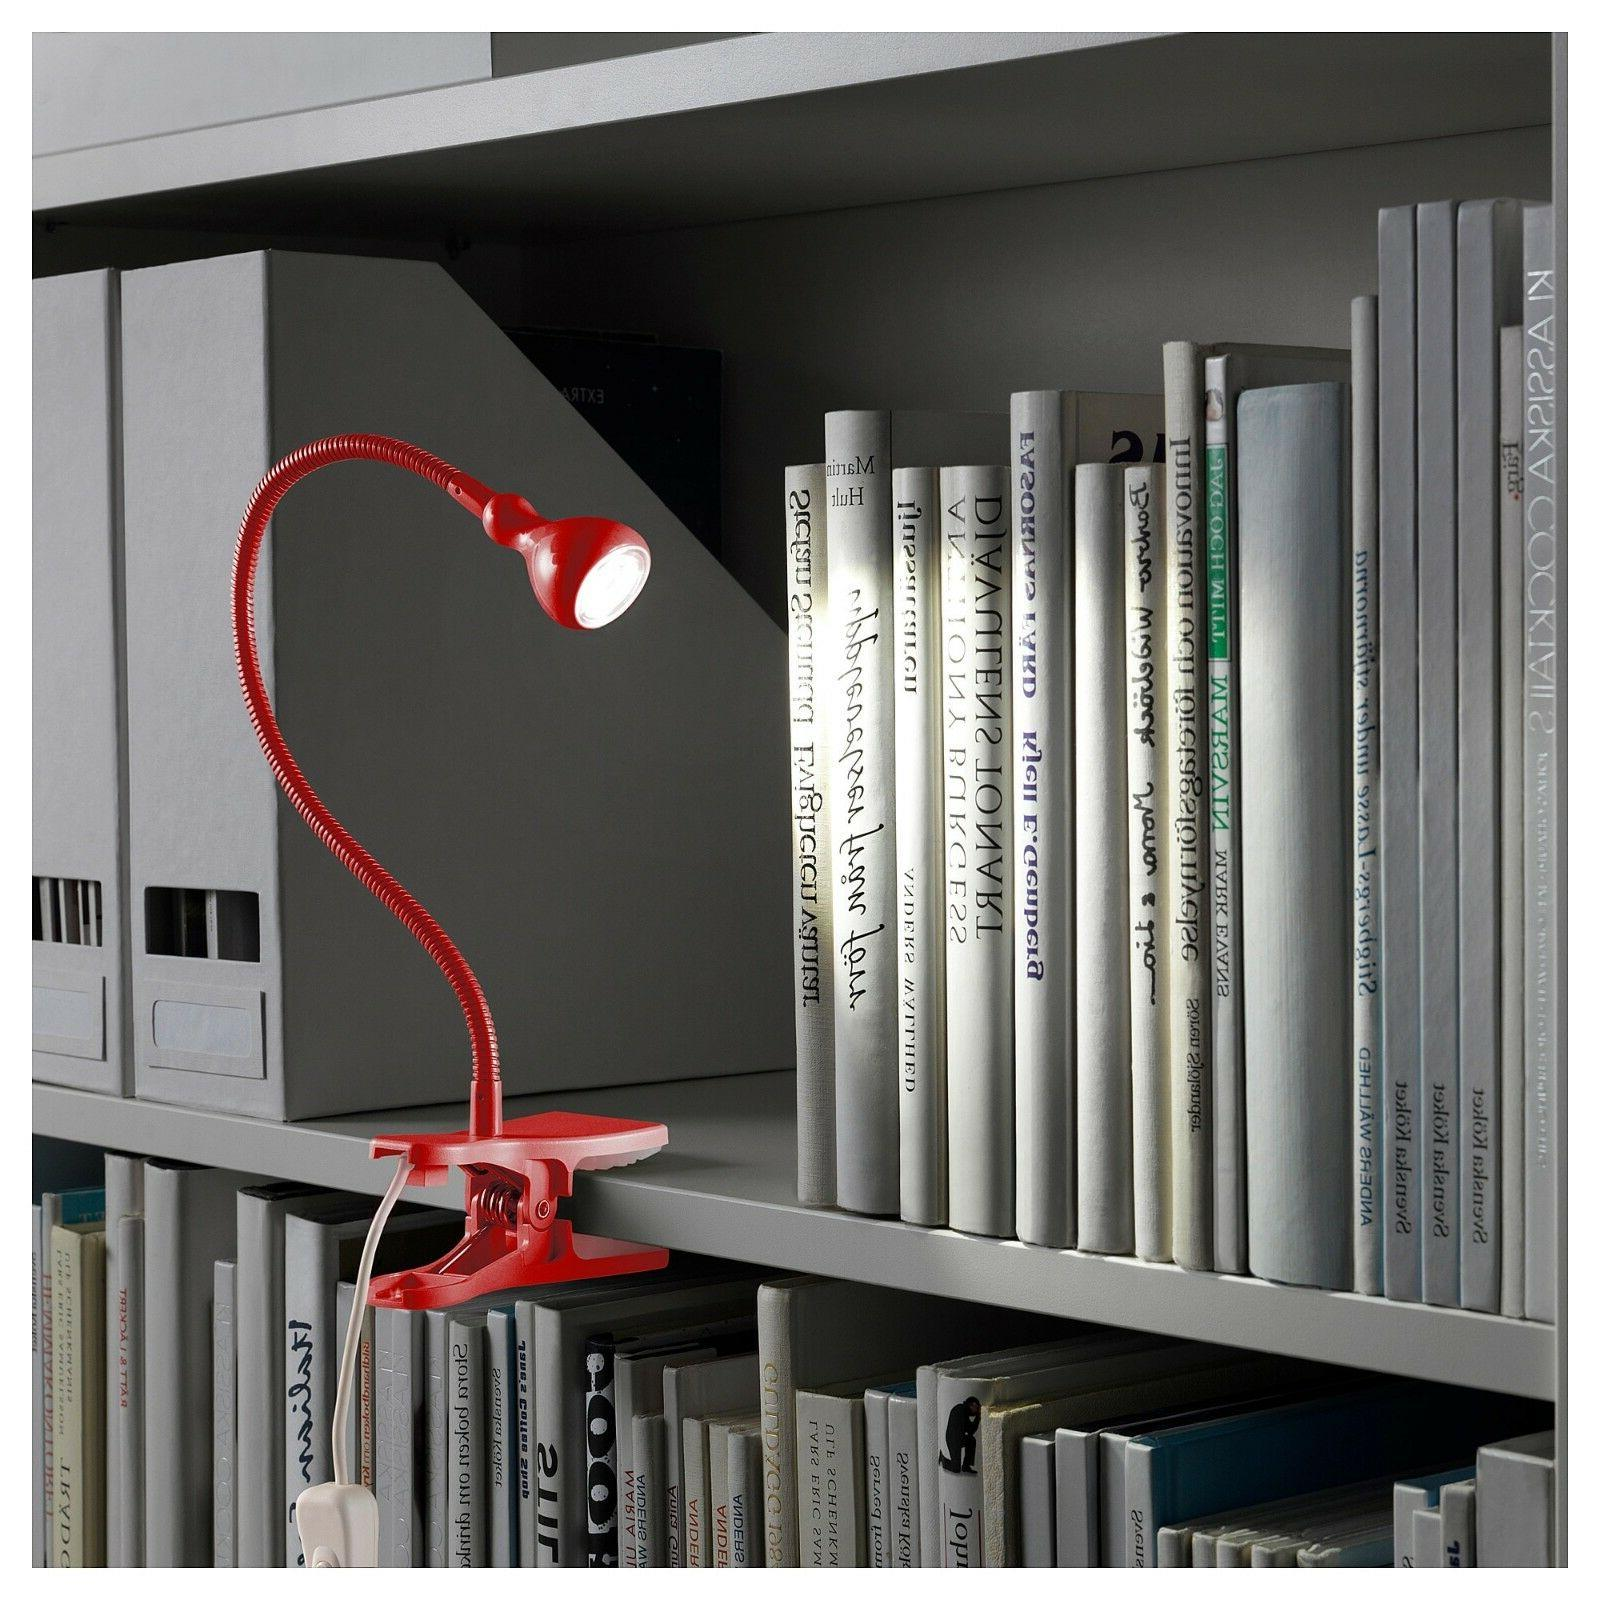 NEW IKEA LED CONSUMES UP TO ENERGY